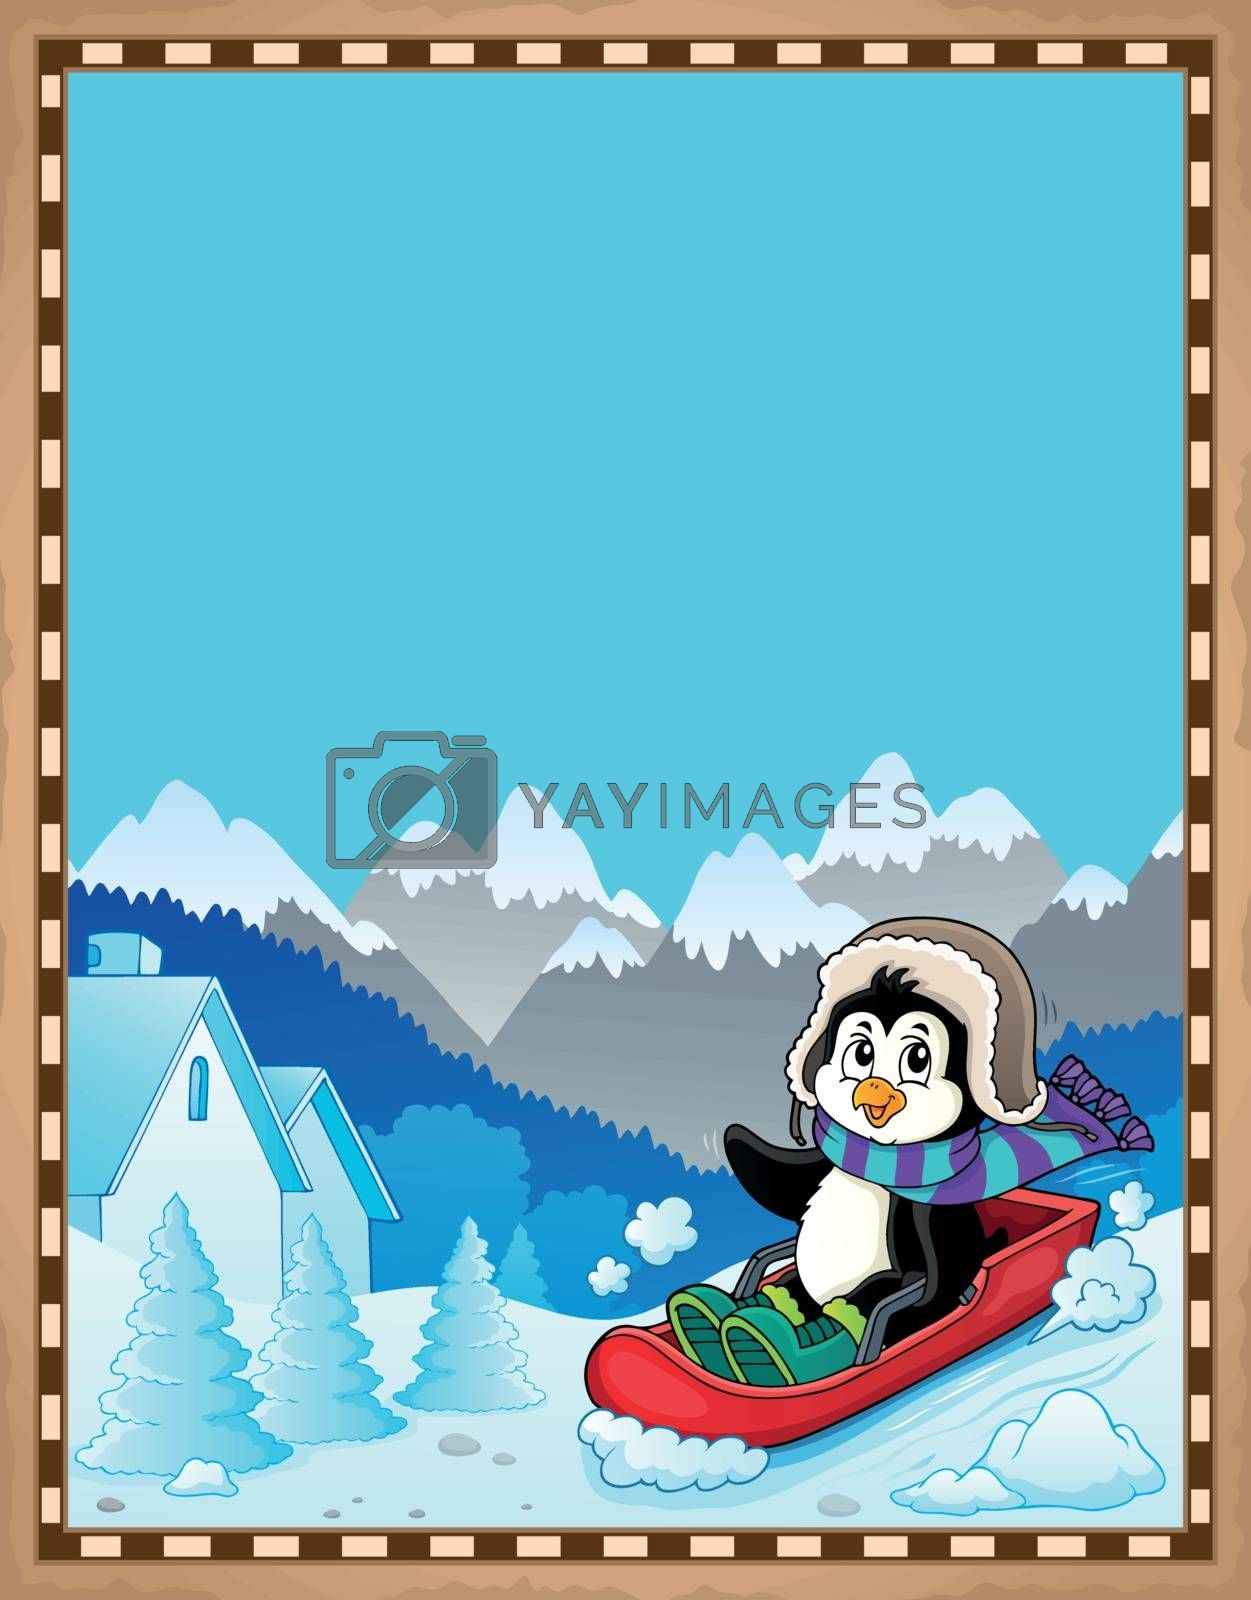 Penguin on bobsleigh theme parchment 1 - eps10 vector illustration.